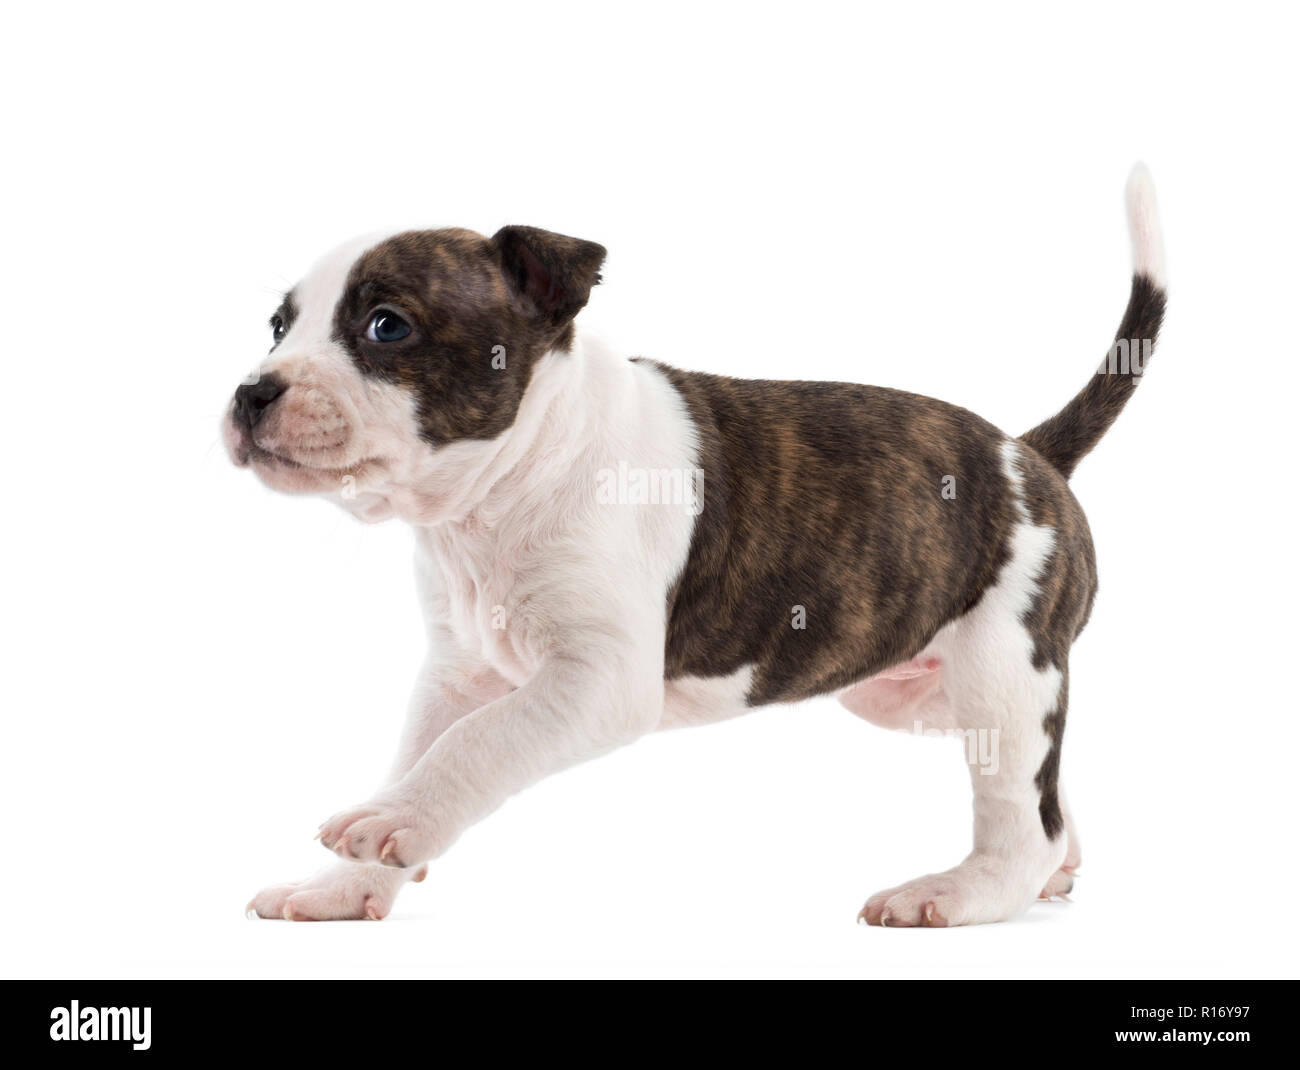 American Staffordshire Terrier Puppy running, 6 weeks old